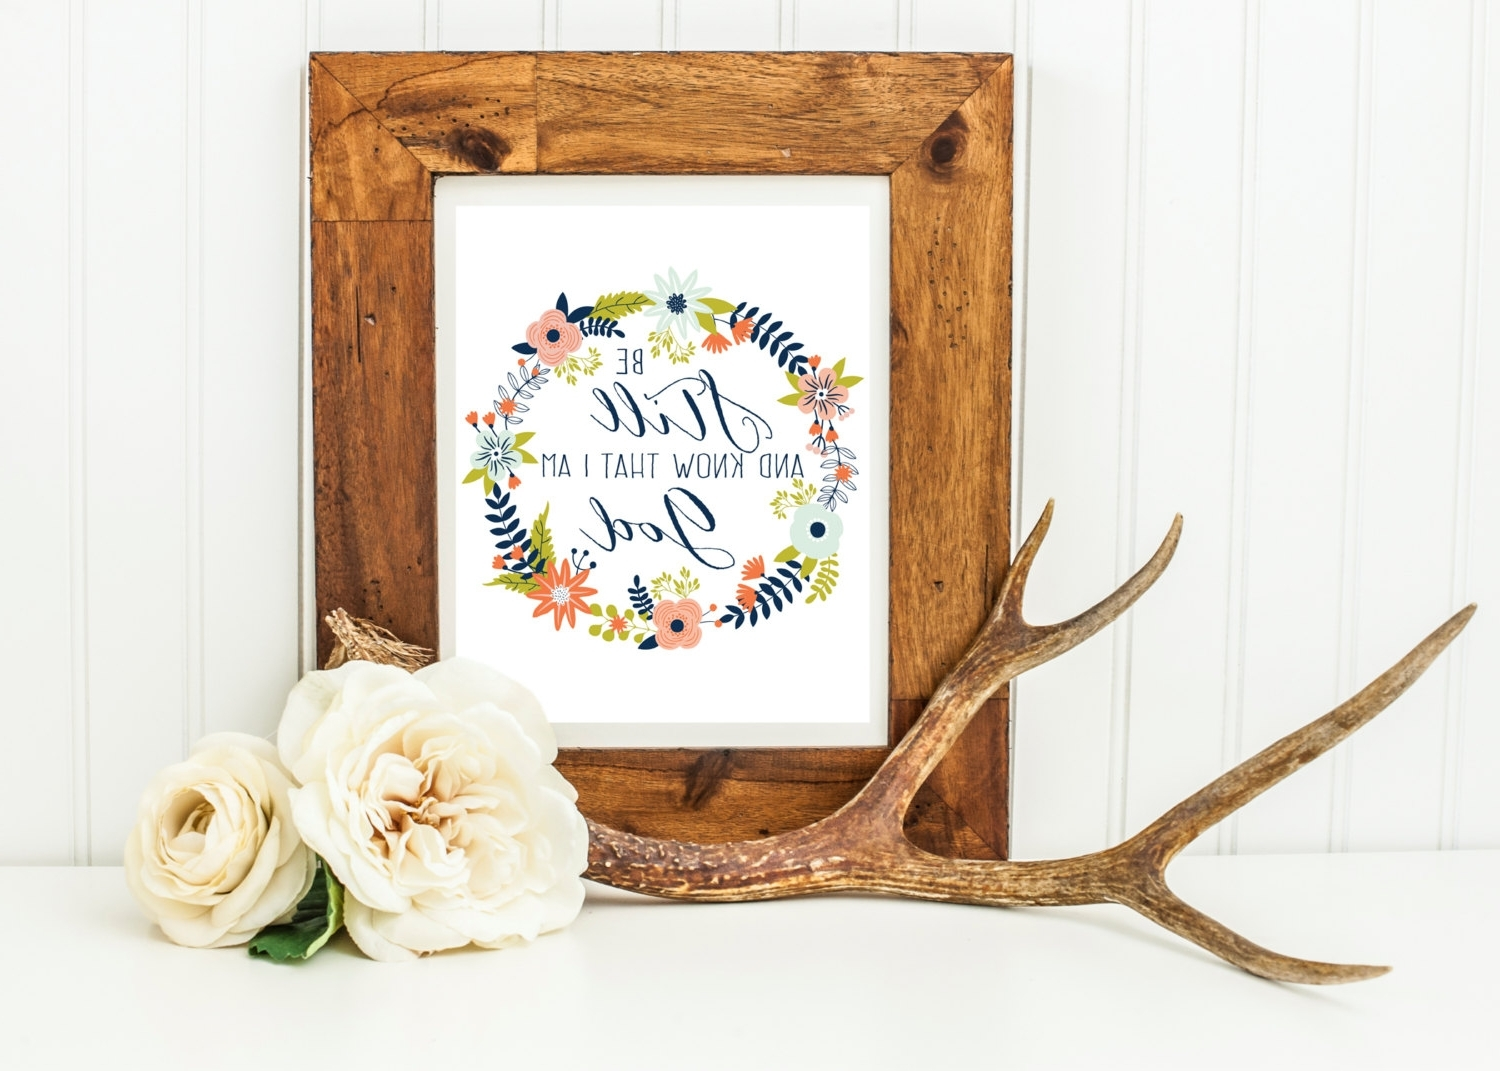 Most Popular Be Still And Know That I Am God Wall Art Regarding Be Still And Know That I Am God Wall Art, Scripture Wall Decor (View 11 of 15)